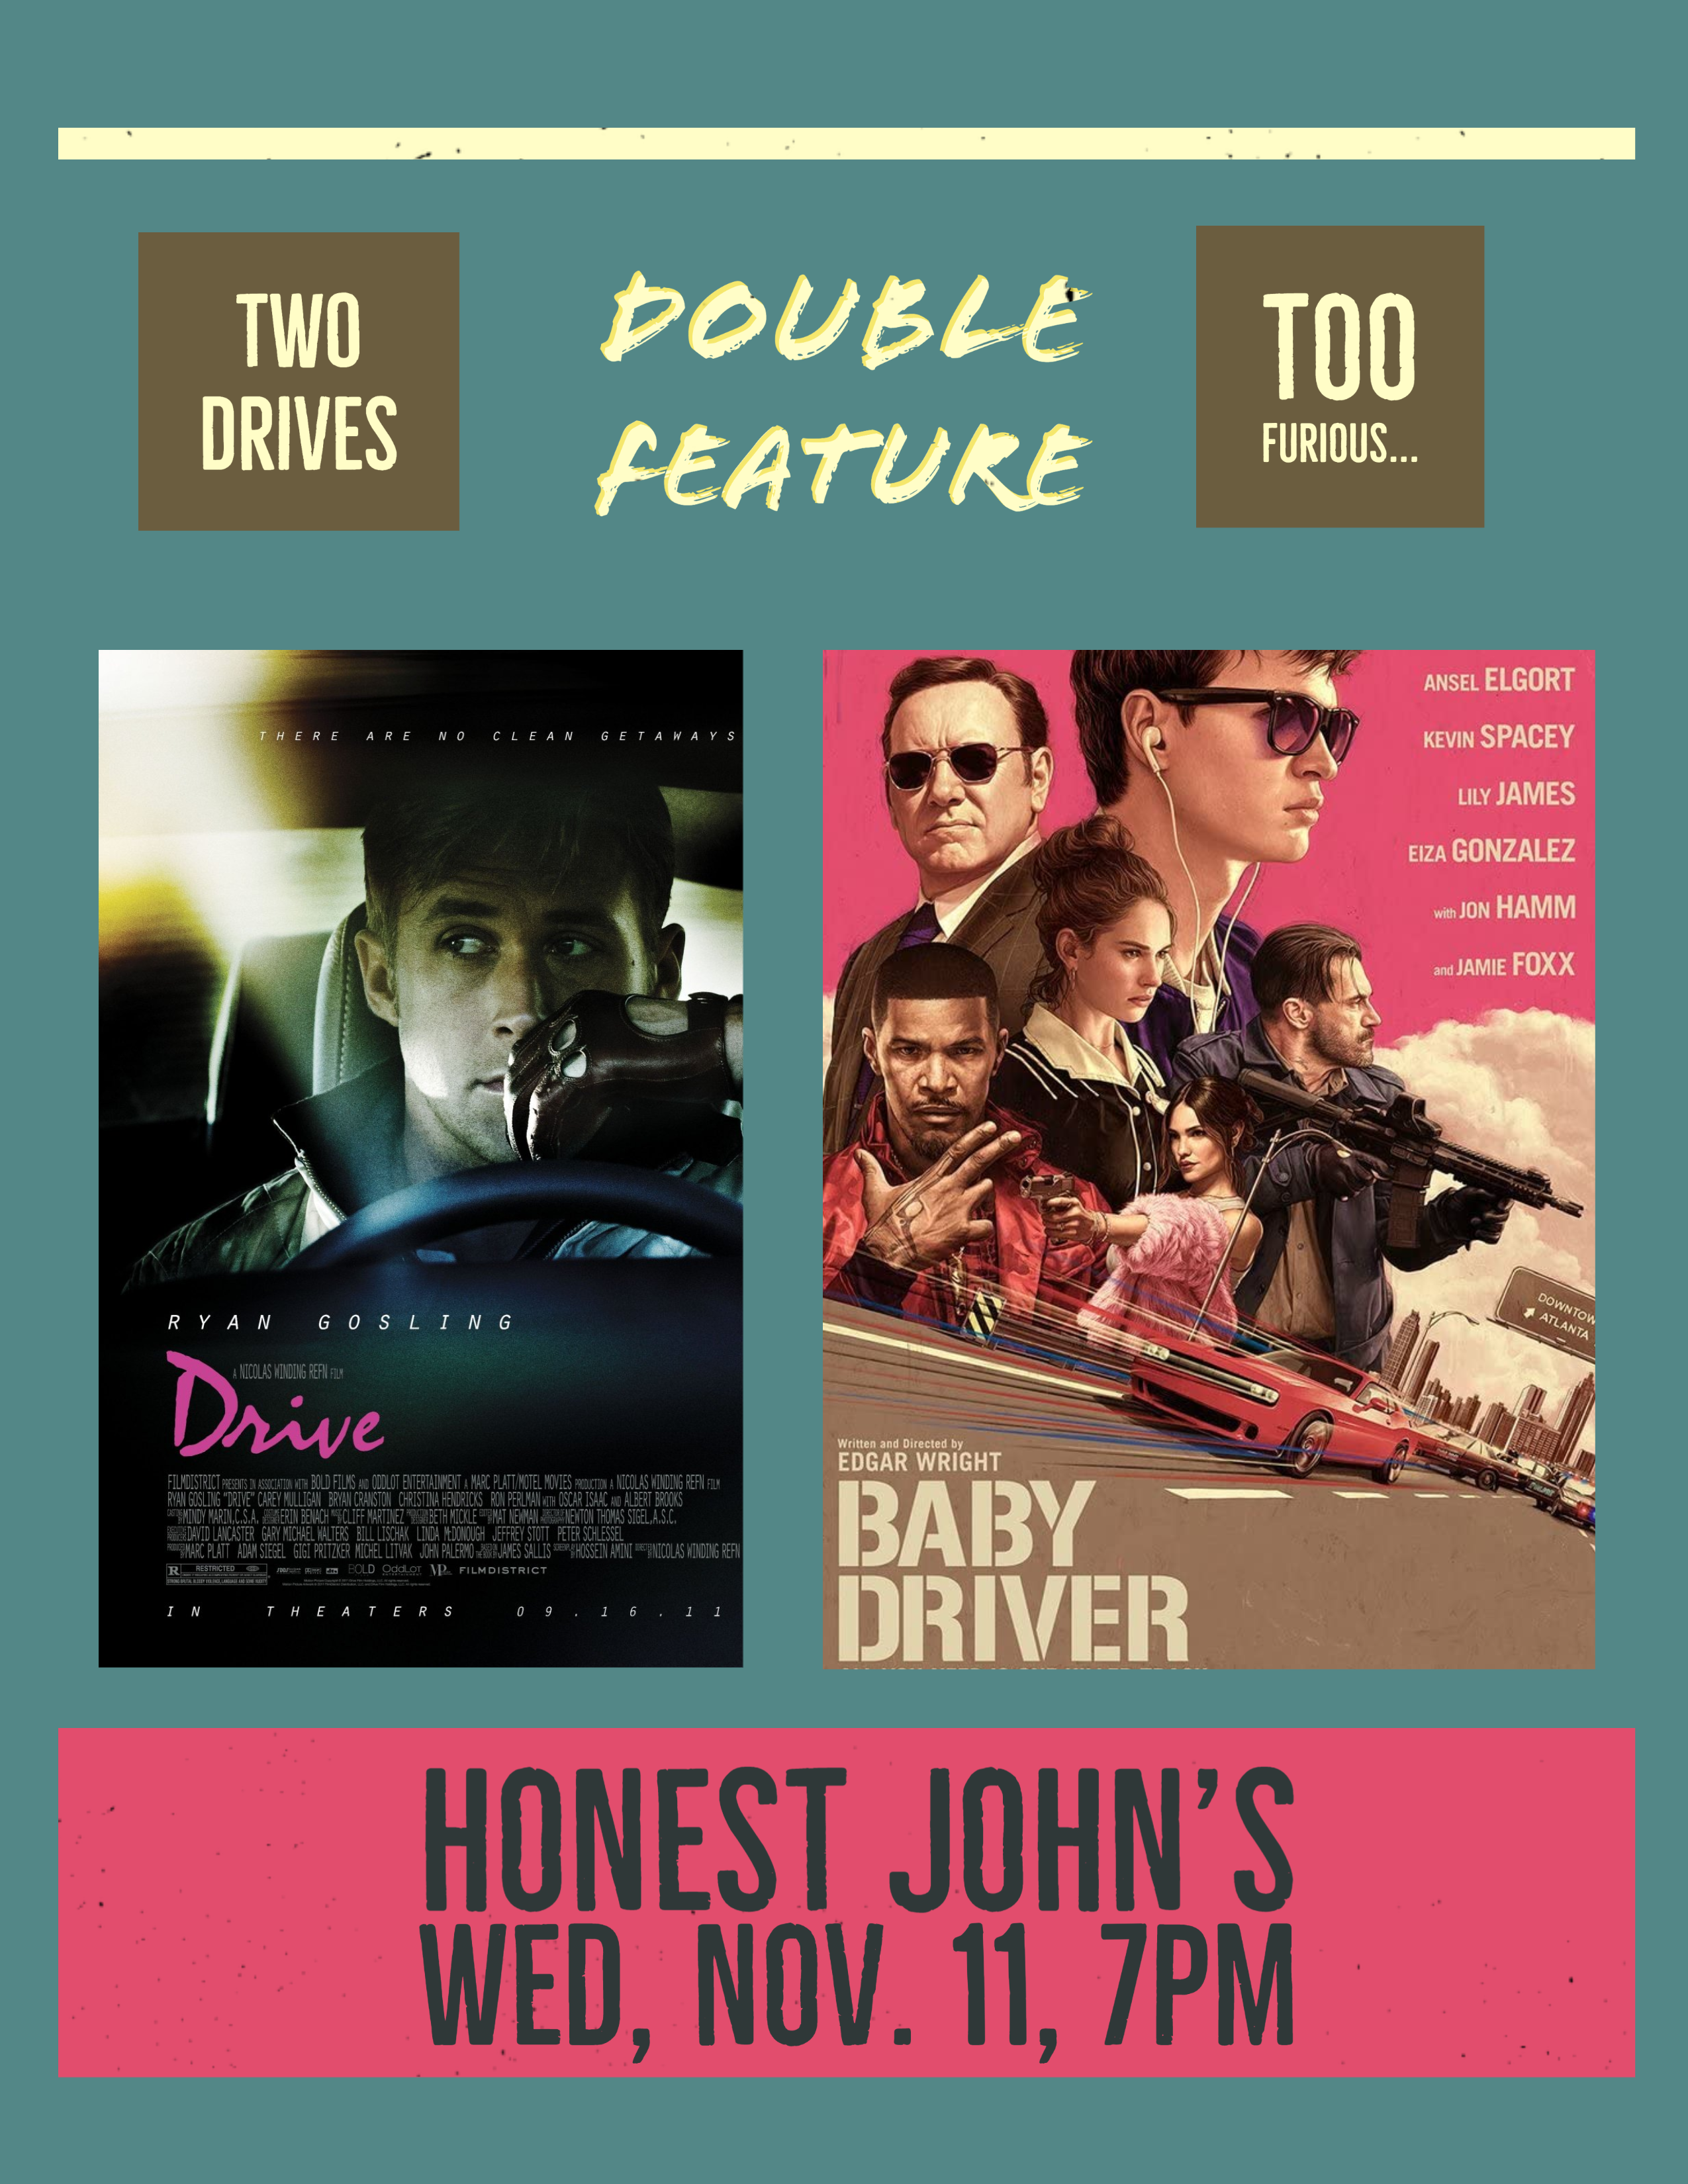 Poster for DRIVE & BABY DRIVER at Honest John's!